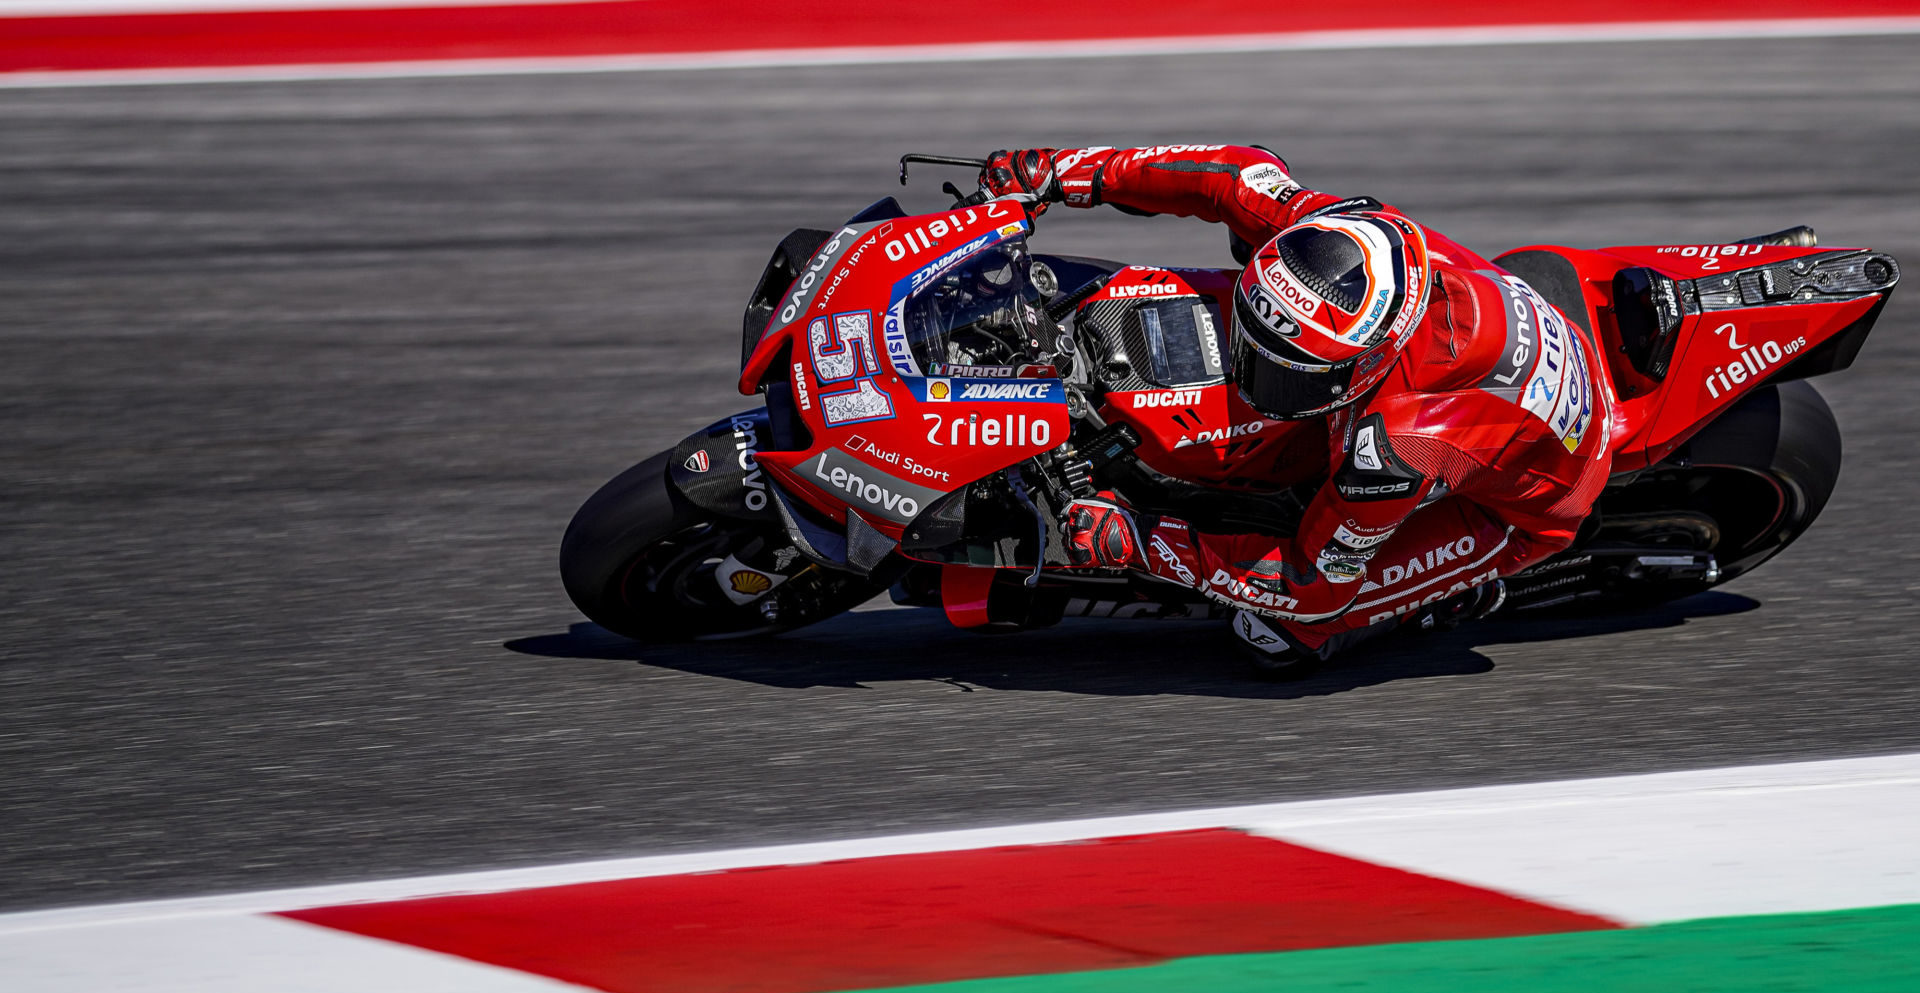 Ducati test rider Michele Pirro (51) competing as a wild card at Misano in 2019. Photo courtesy Ducati.